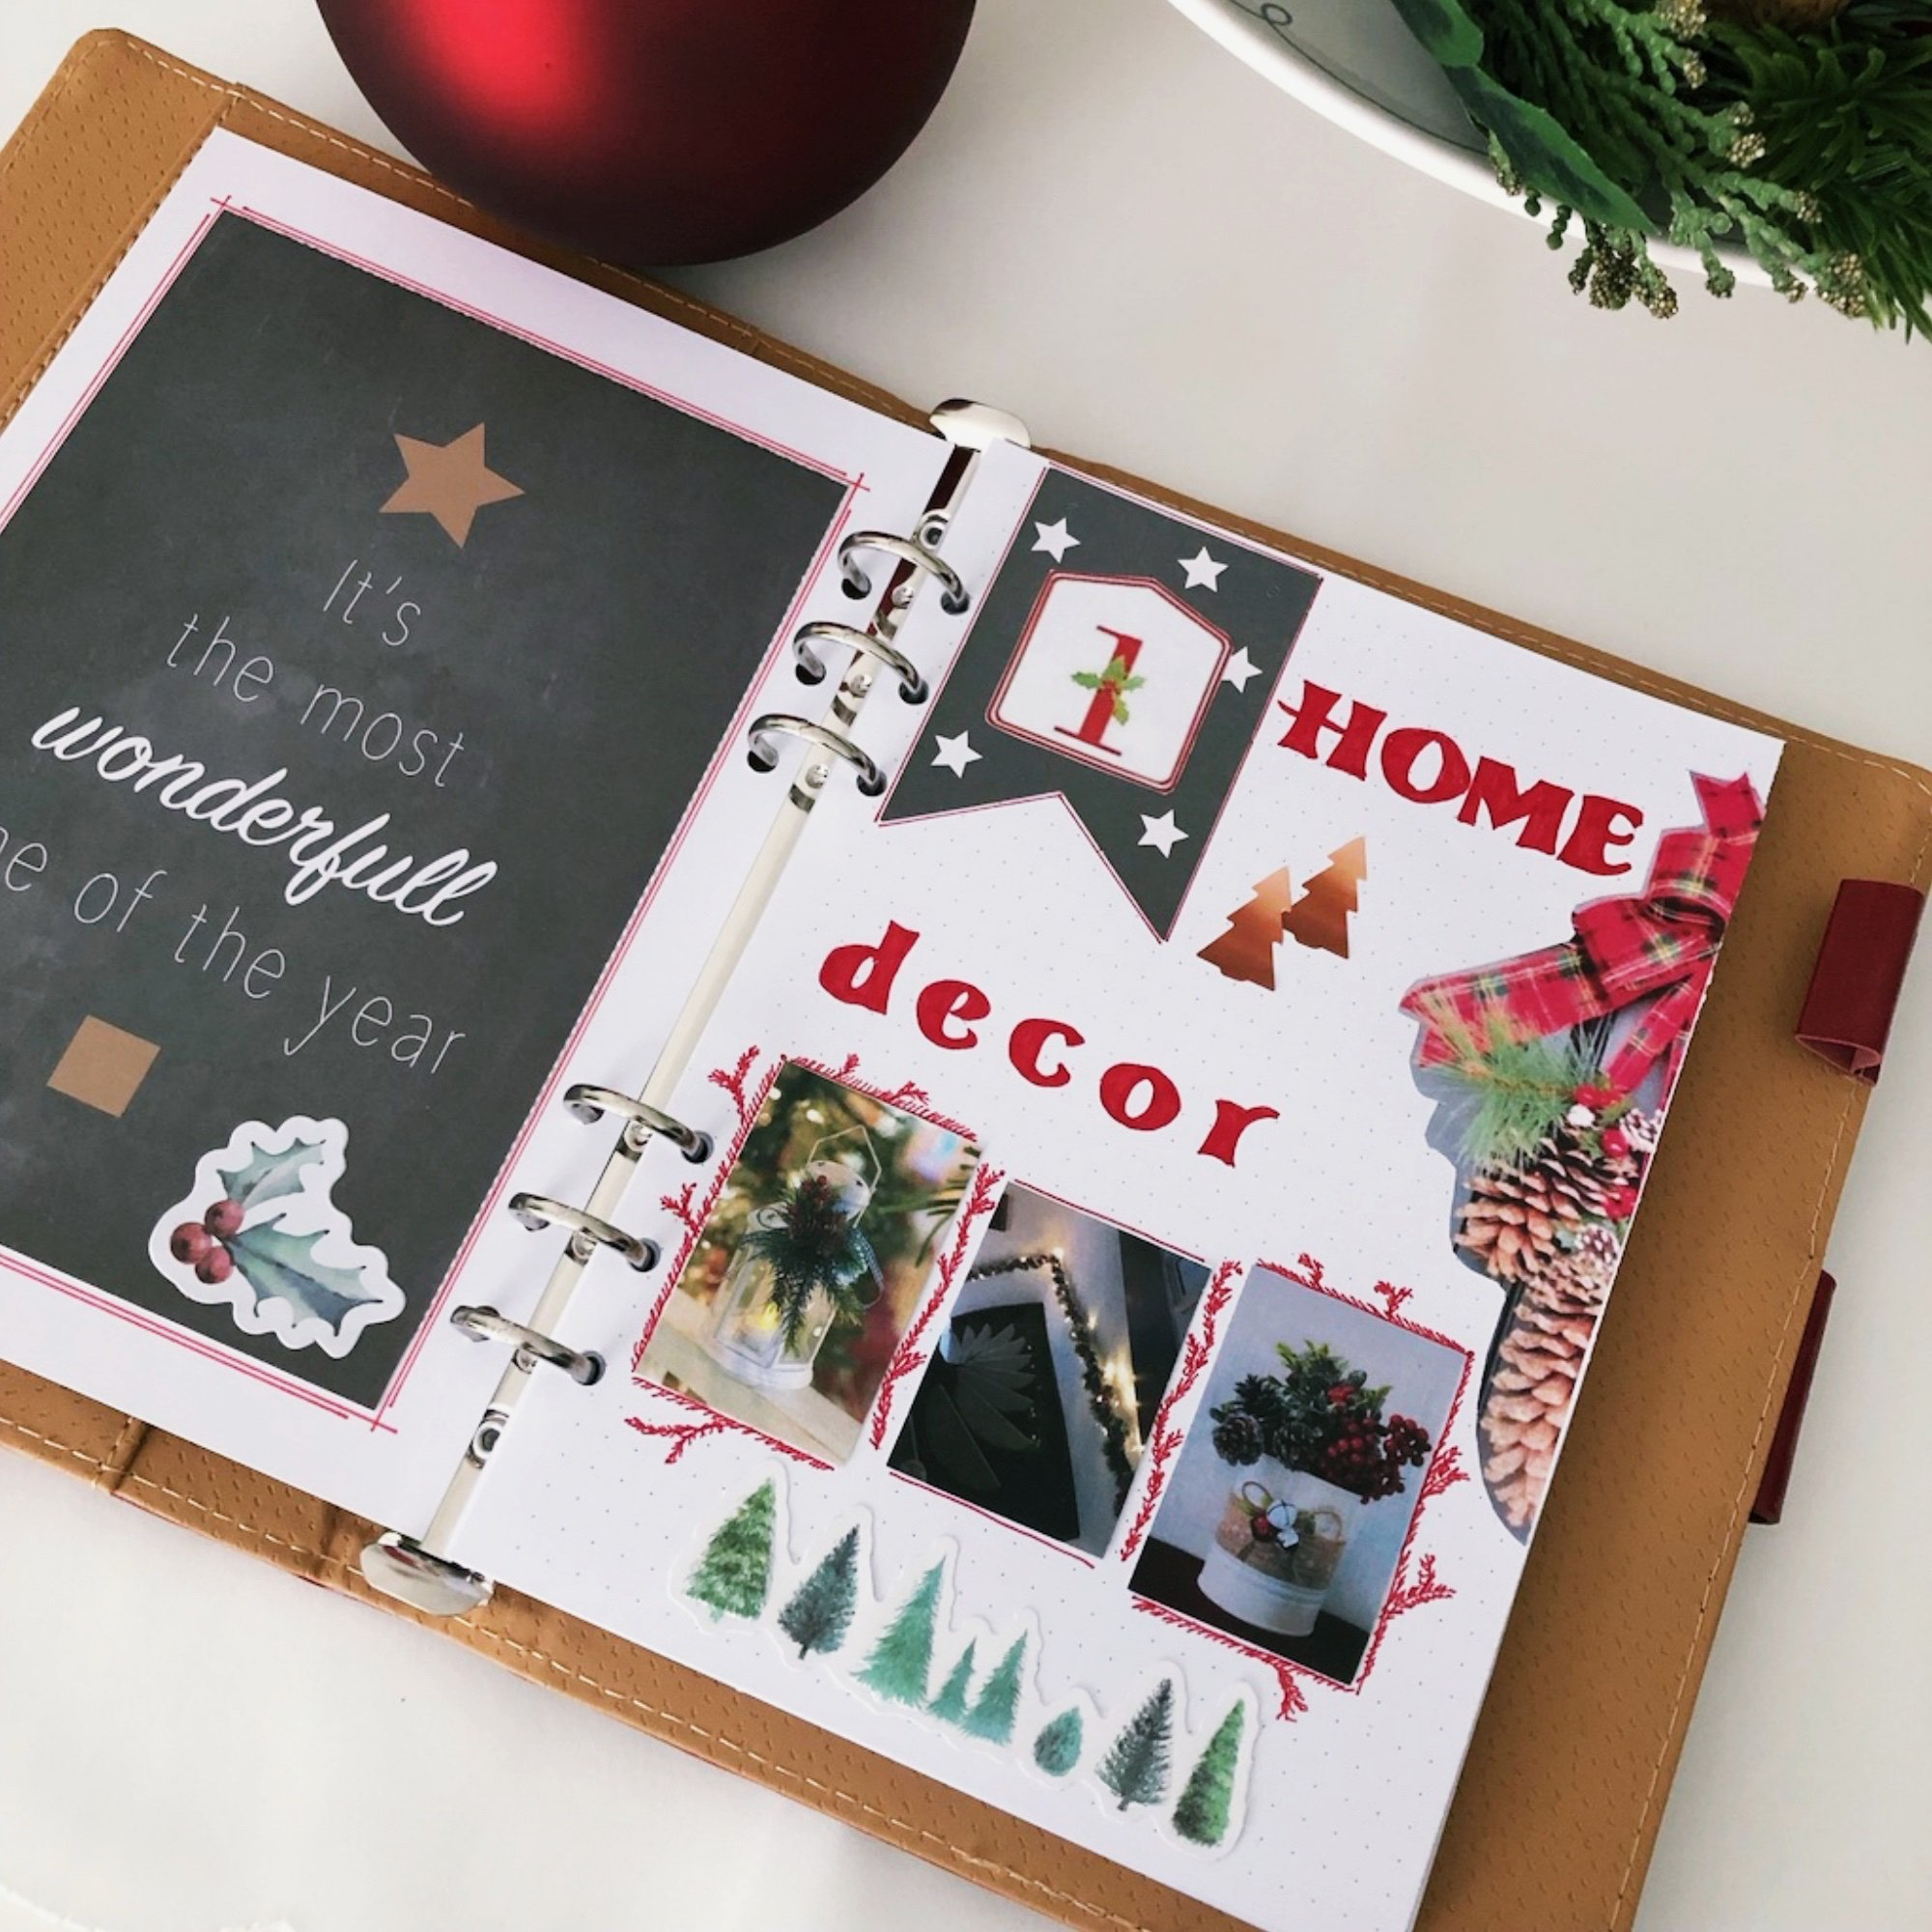 Creative journaling - December daily memories Day 1 - itstartswithacoffee.com #creativejournaling #journaling #daily